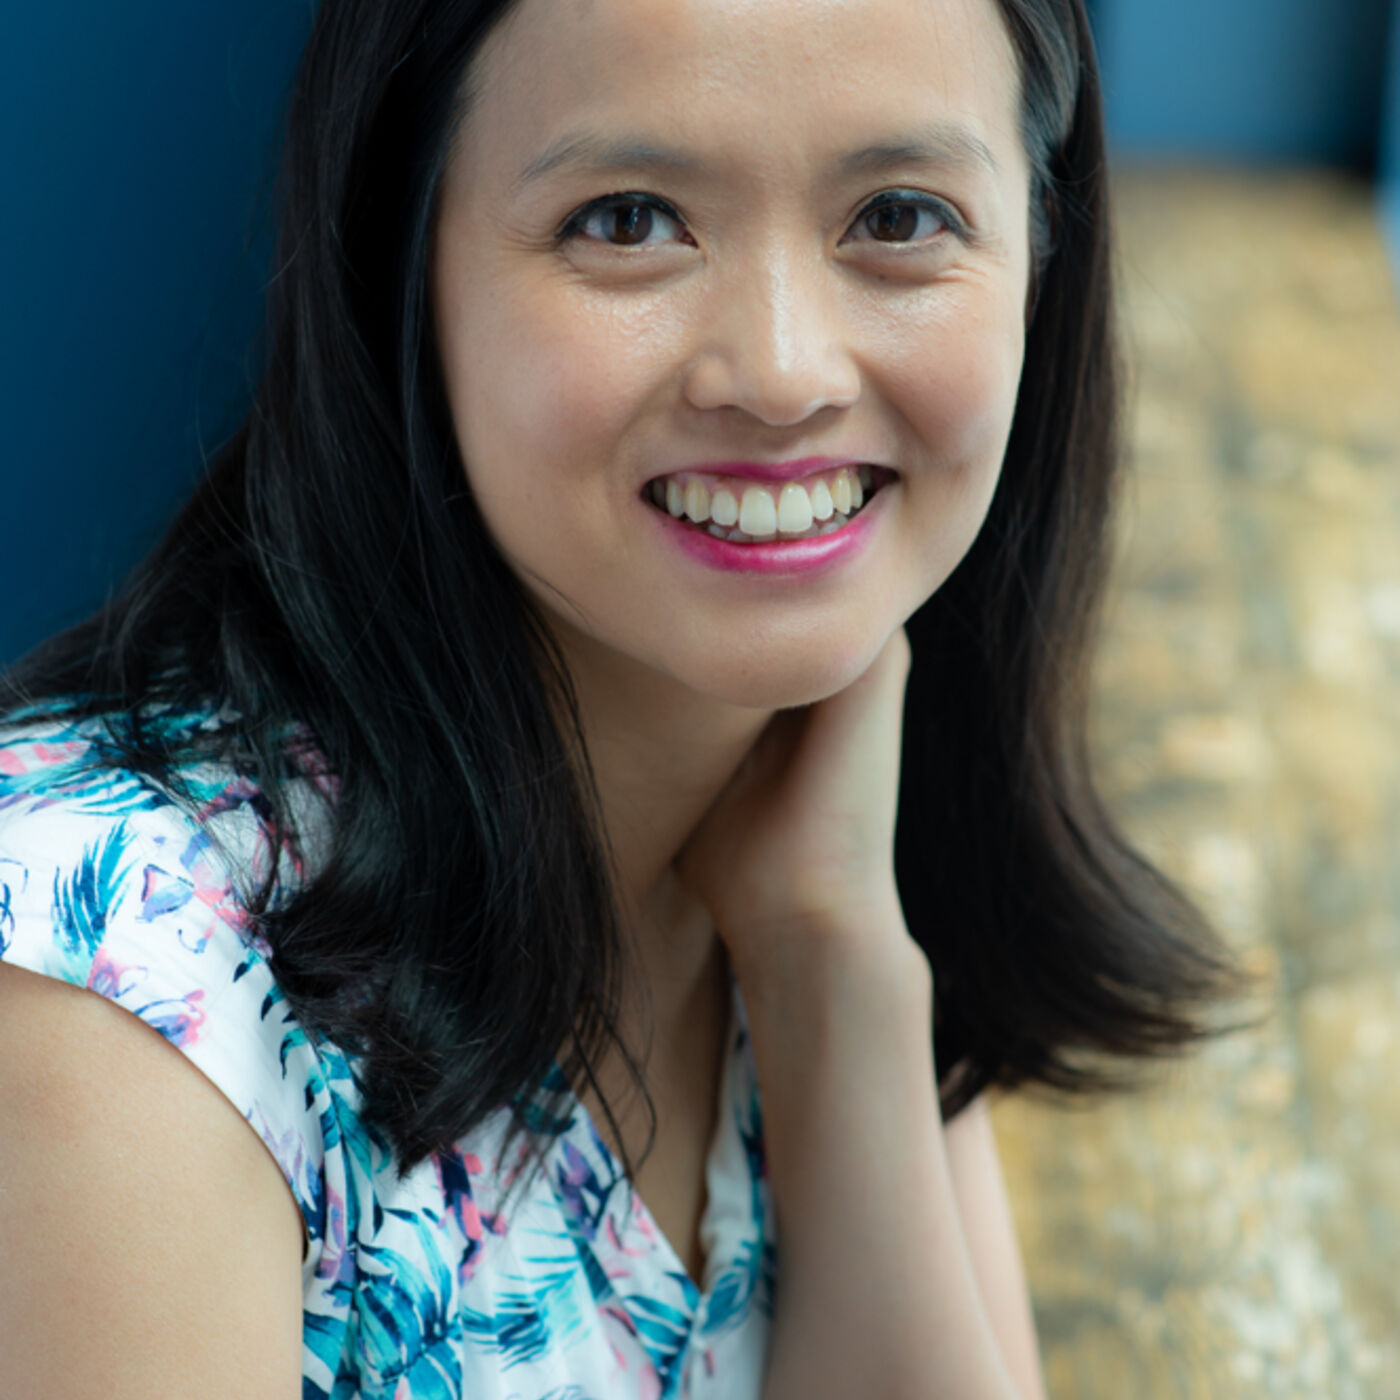 Episode 71: Series - Anti-Diet Approaches to New Year's Resolutions with Vincci Tsui